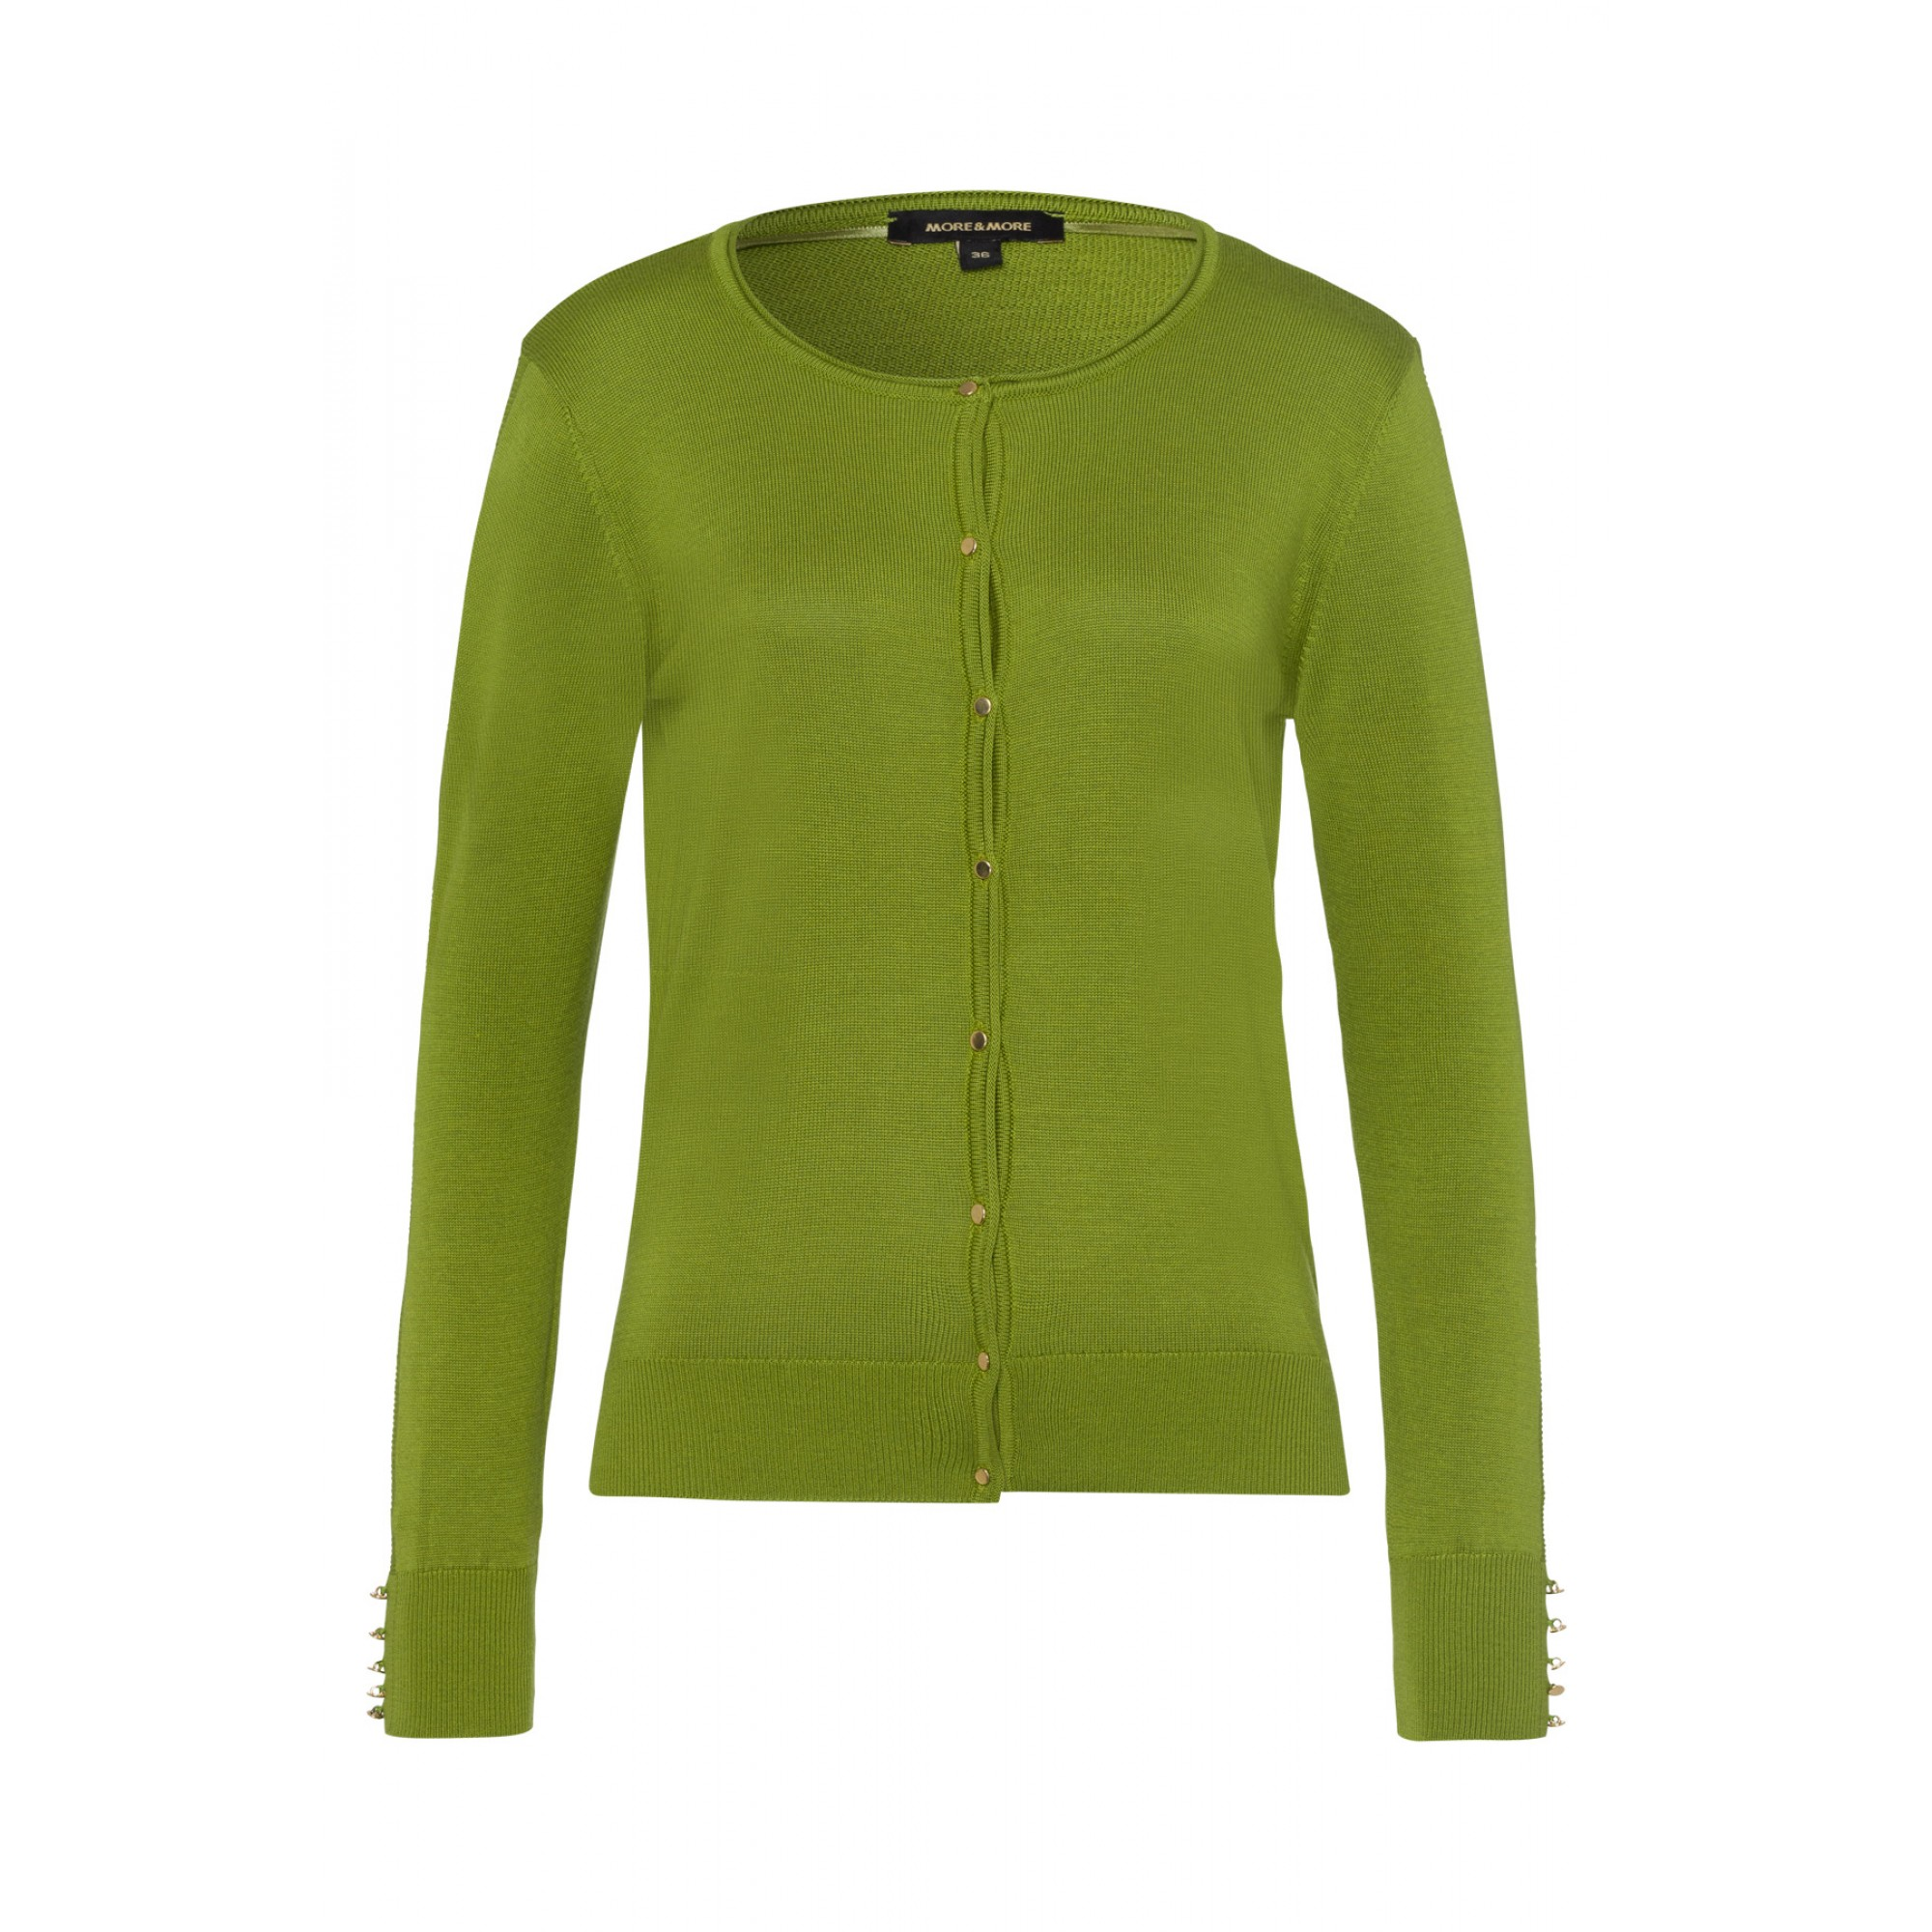 Cardigan, leaf green 01091208-0649 1